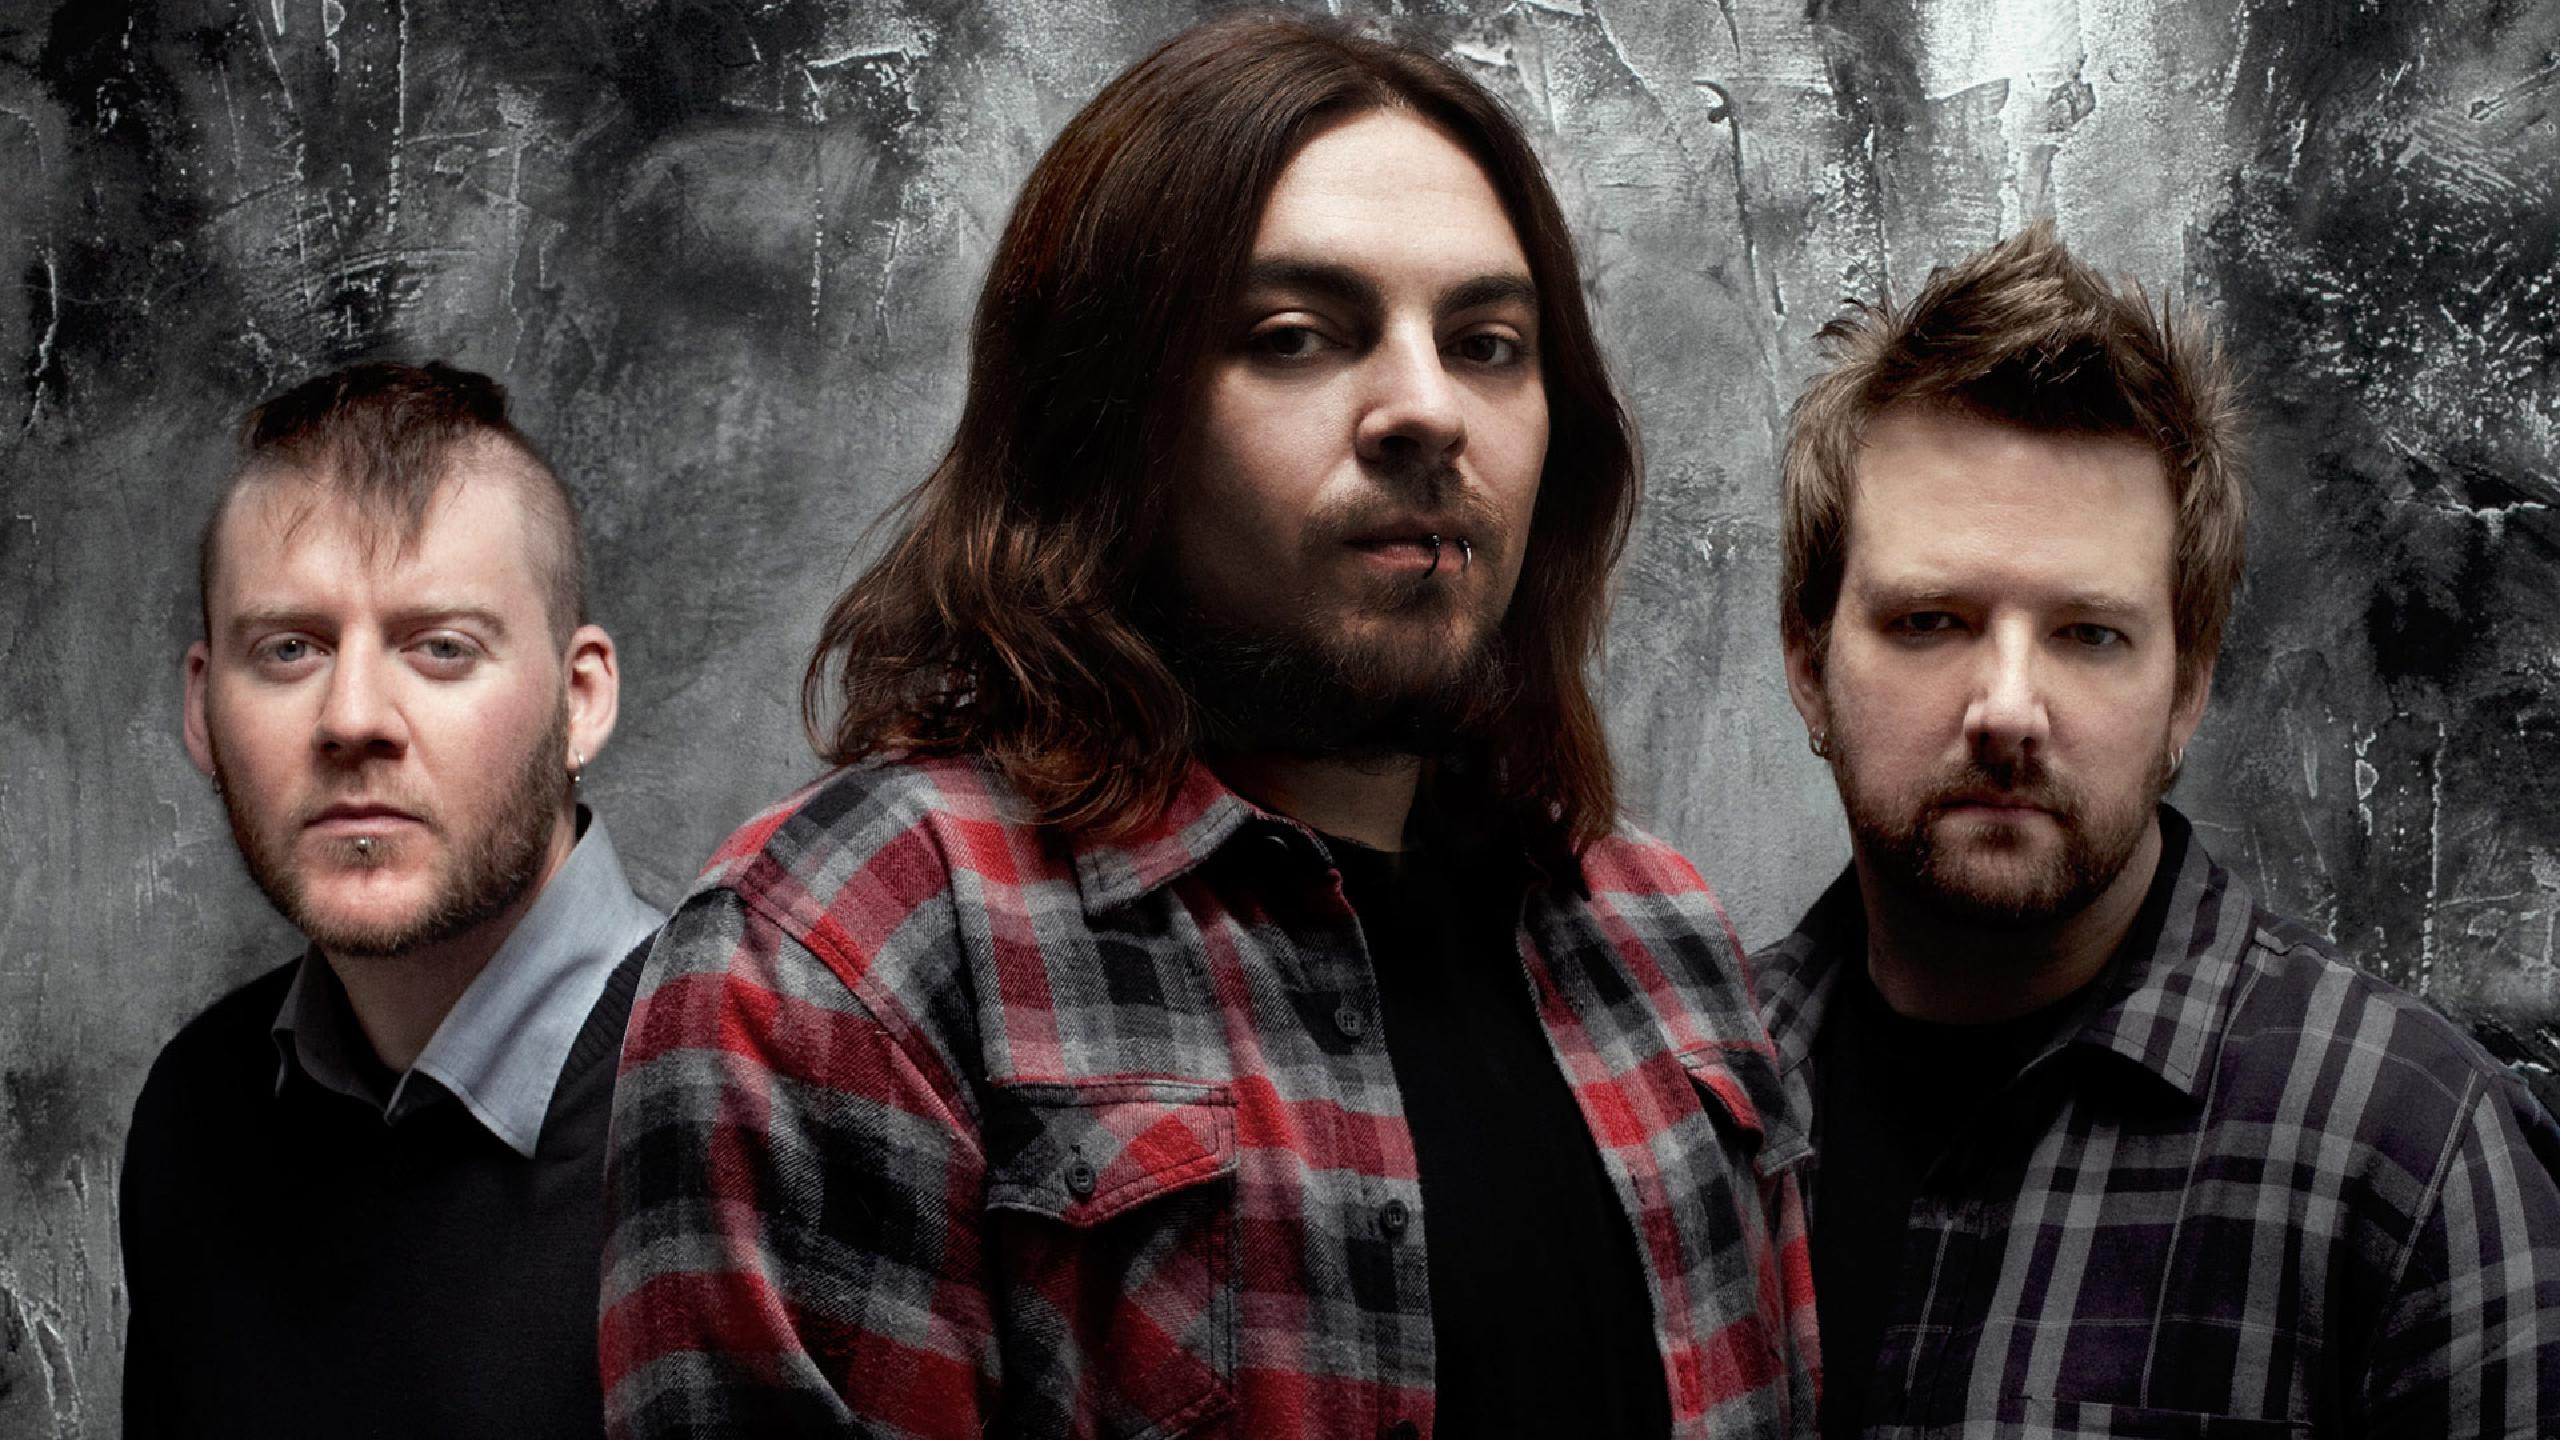 Seether Tour 2020.Seether Tour Dates 2019 2020 Seether Tickets And Concerts